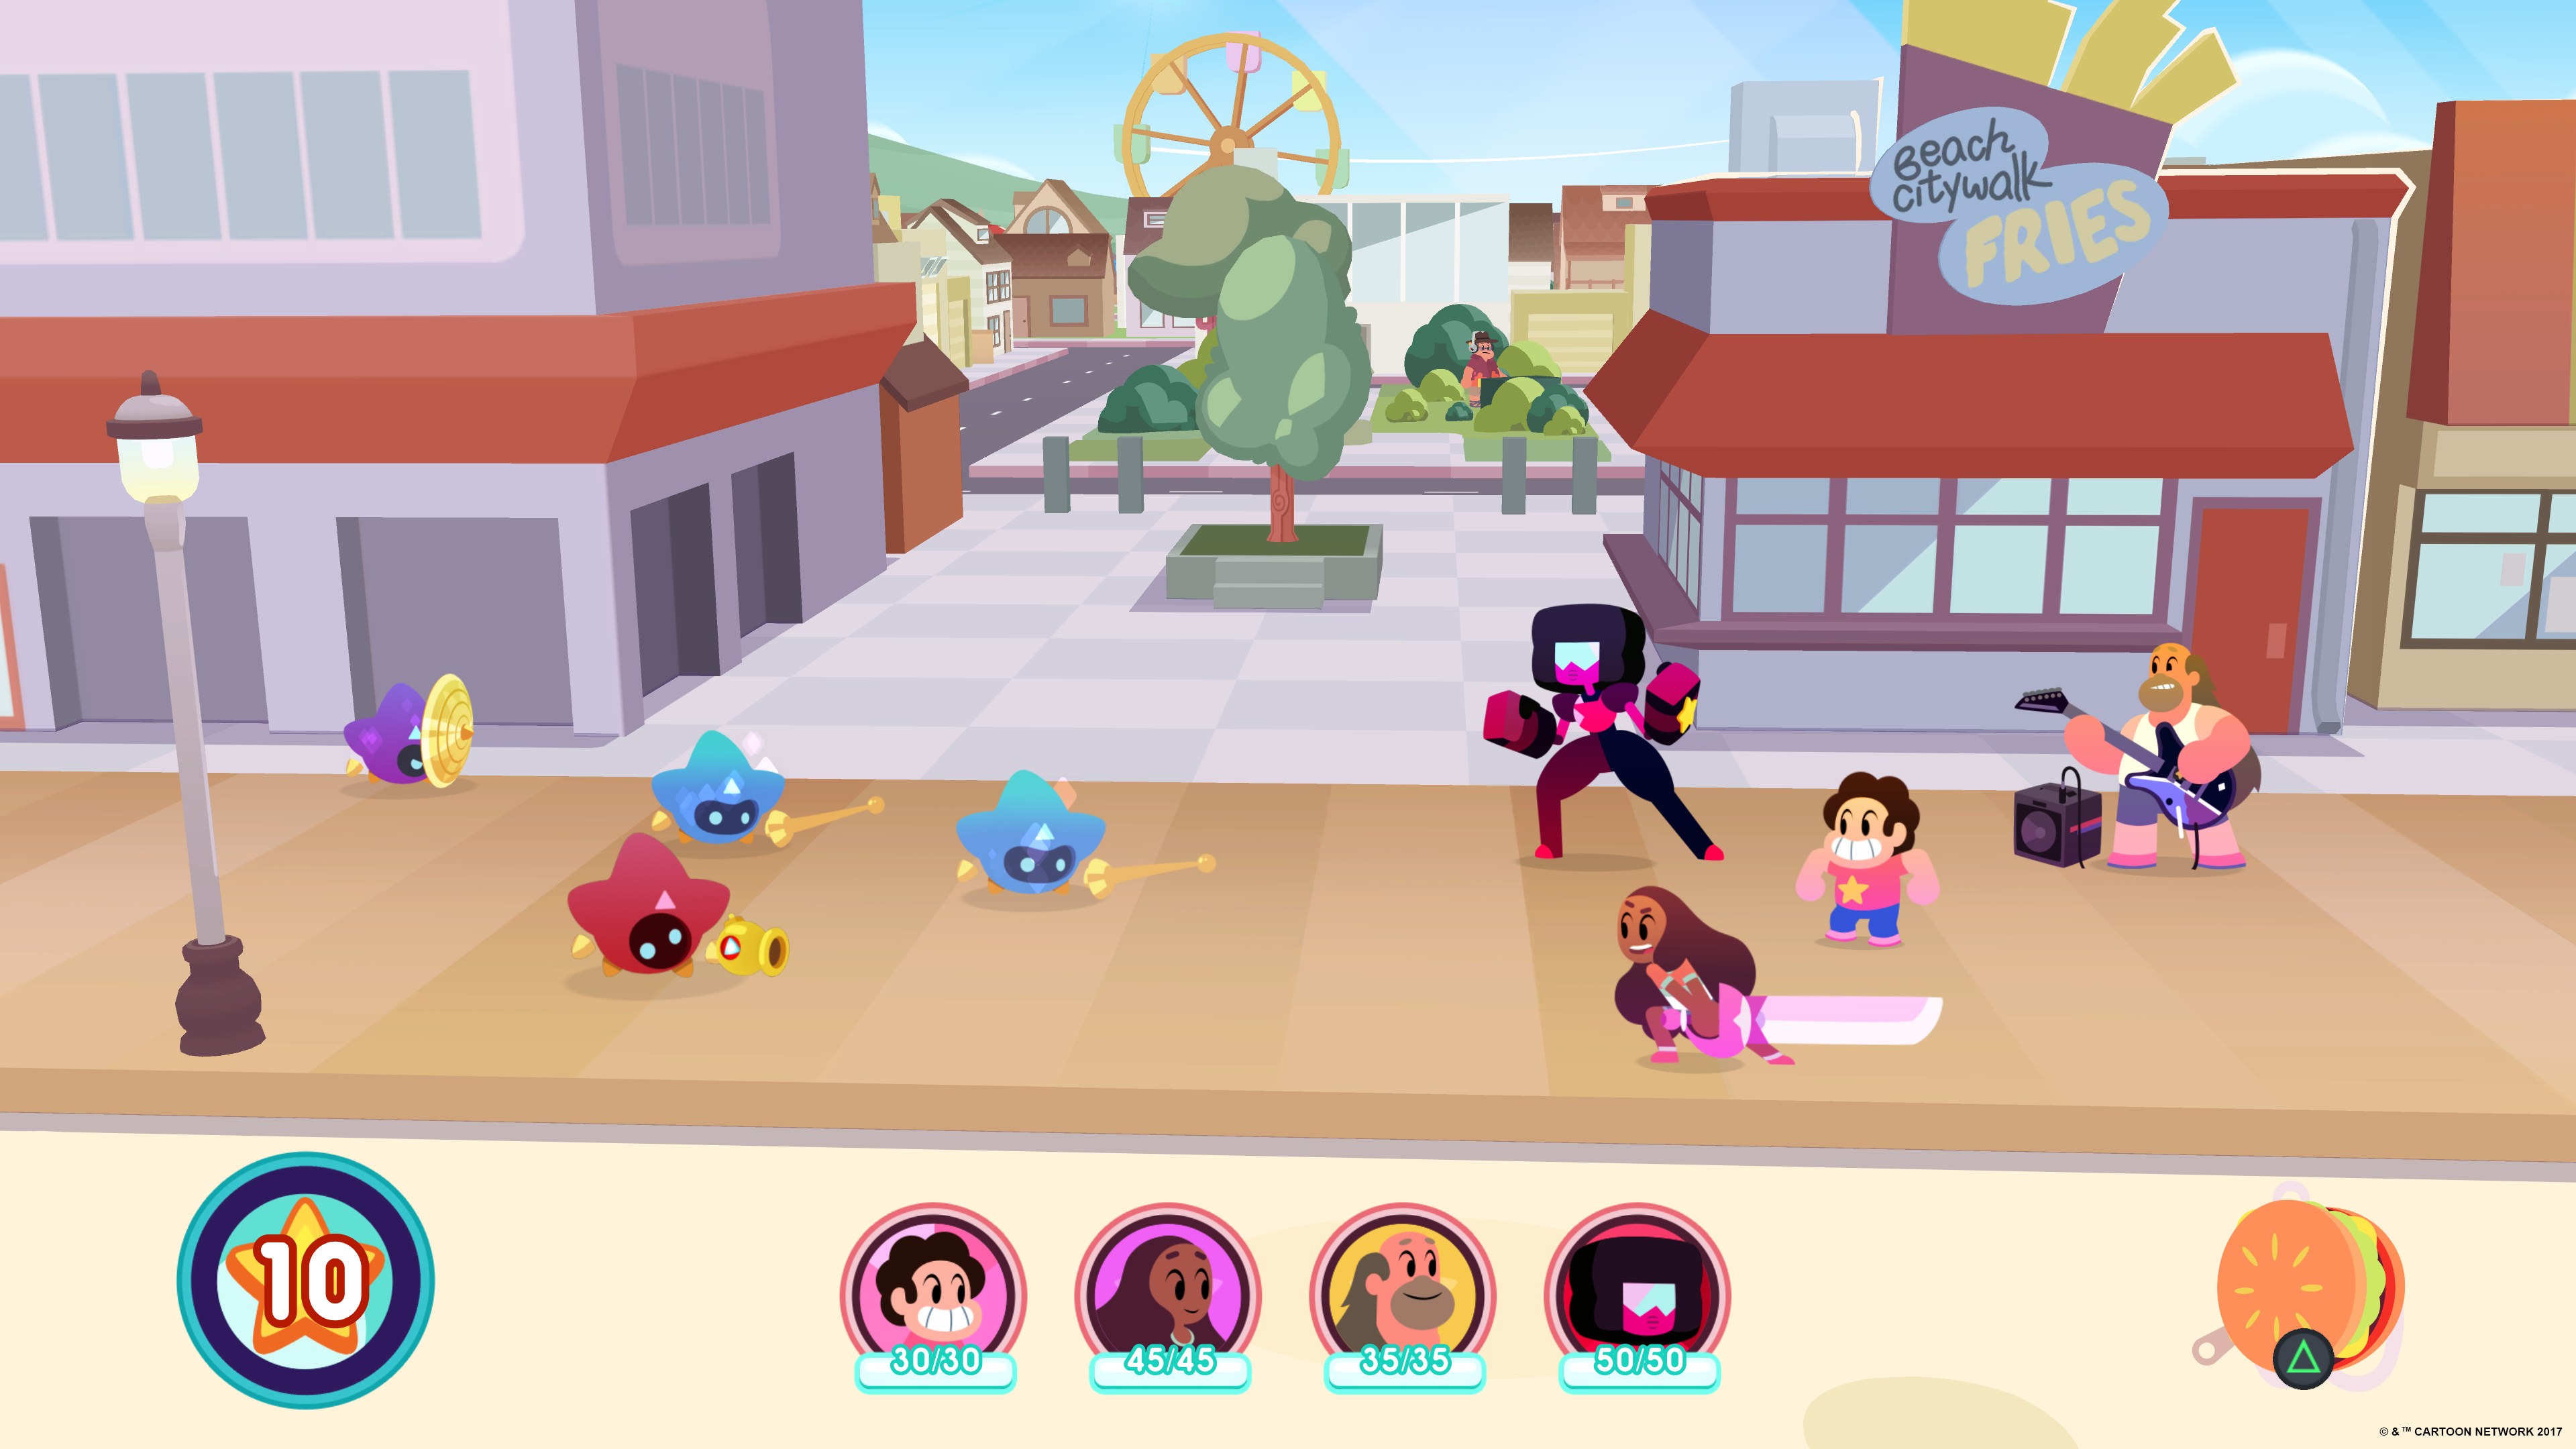 steven universe is coming to consoles with original rpg polygon